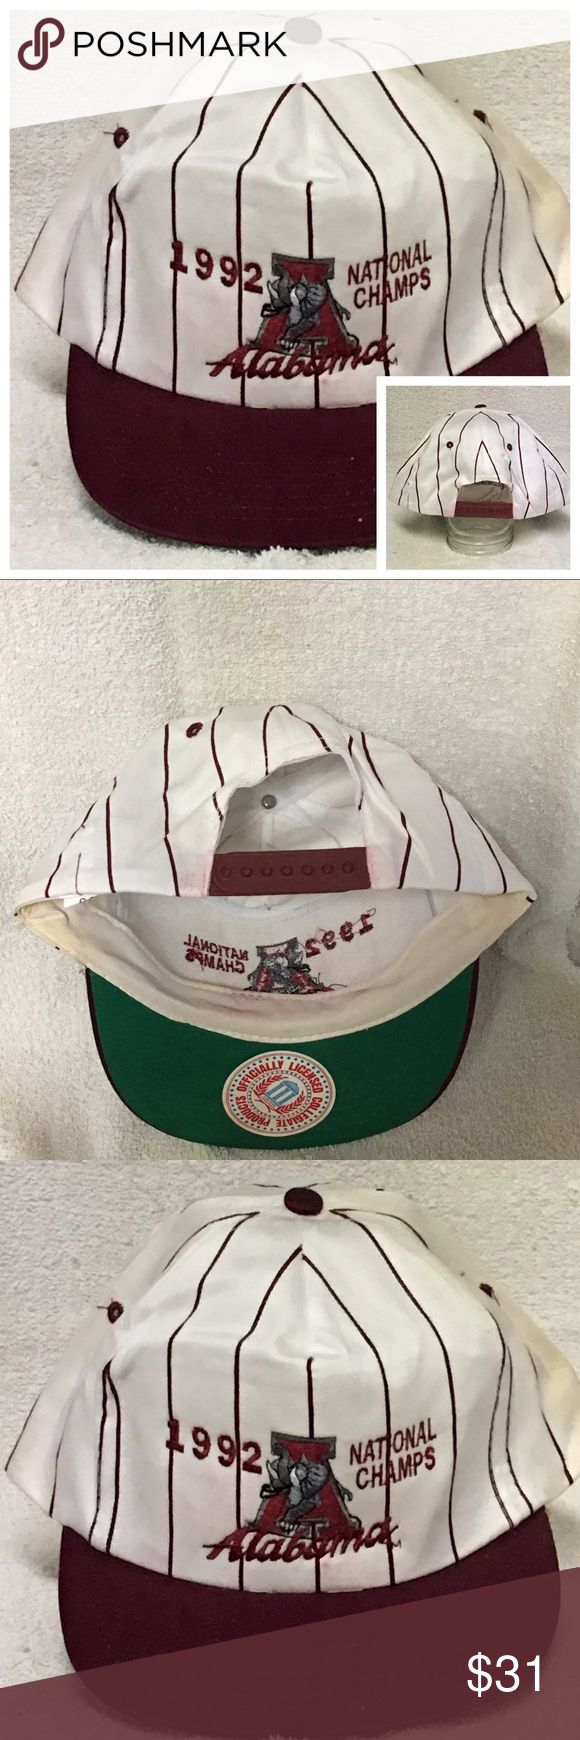 Alabama Crimson Tide Vintage Trucker Cap Snapback Alabama Crimson Tide Vintage Trucker Hat Cap Adjustable Snapback 1992 Champions SEC NCAA   Very Old ( Vintage )   This hat cap is in very poor overall condition. It has some discoloration / slight fading on the folds of the cap as seen in pictures.  It also has some stains on the inside of the bands of the cap. The name brand is CSI  as seen in pictures.    #alabama #sec #ncaa #vintage #collectible # sportsmemobilia #rolltide #snapback CSI…